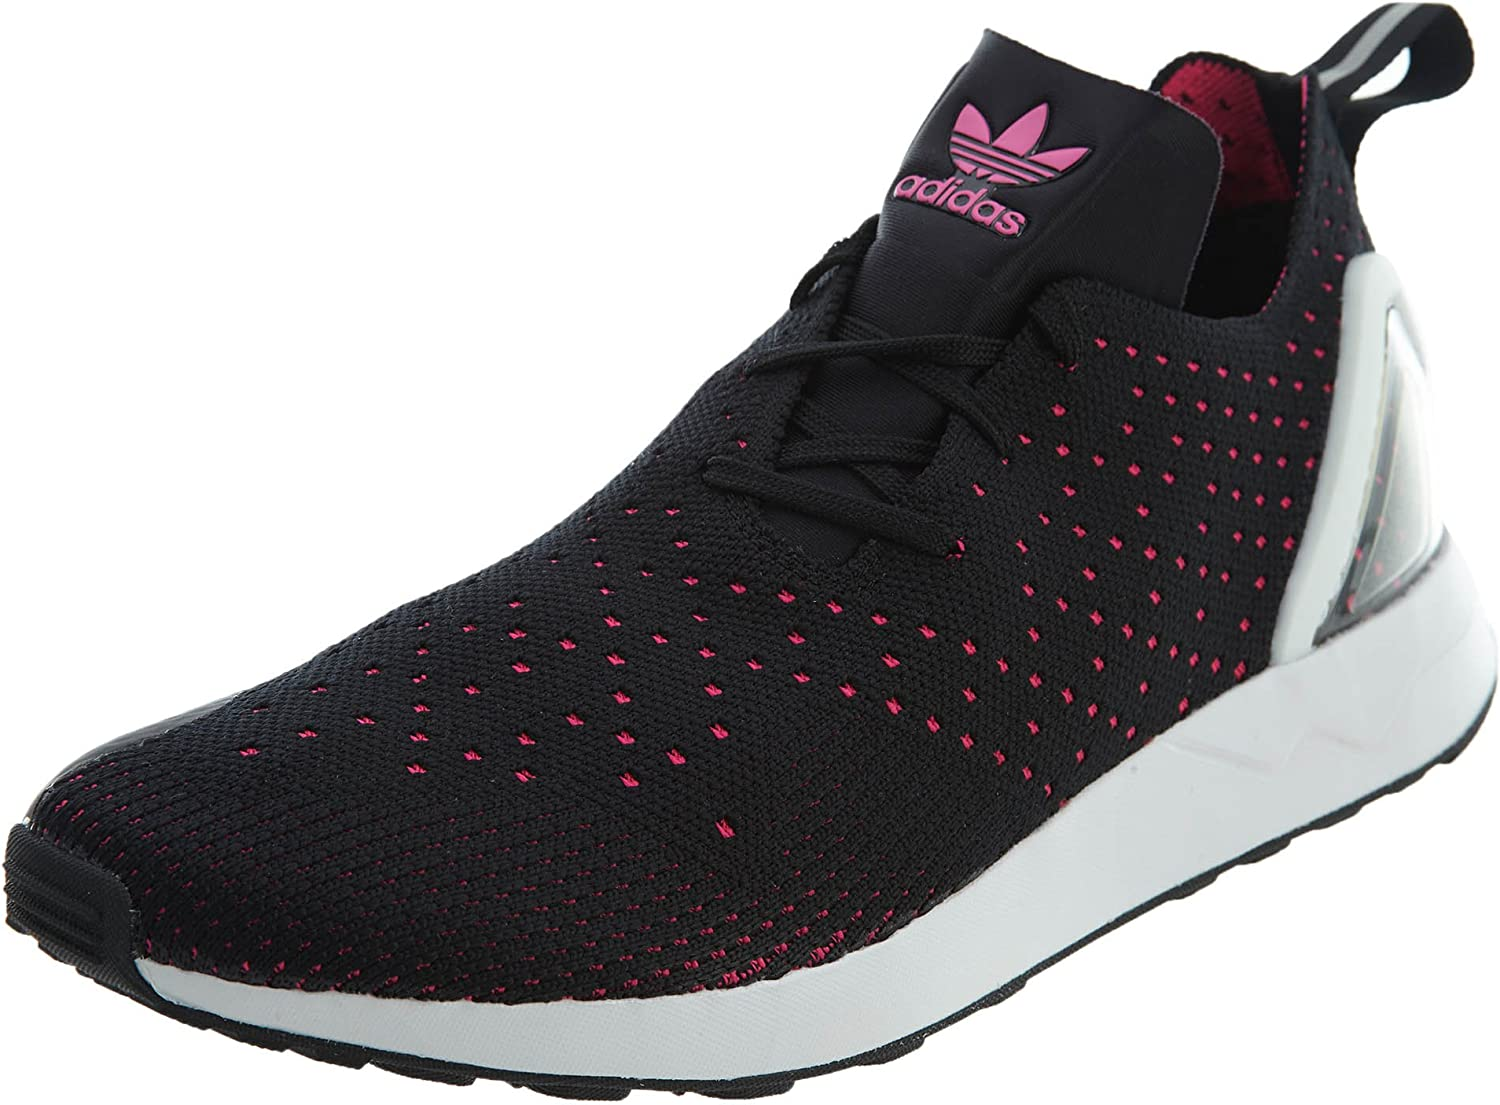 archivo Orbita molestarse  Amazon.com | adidas Zx Flux Racer Primeknit S79064 Casual Men | Road Running